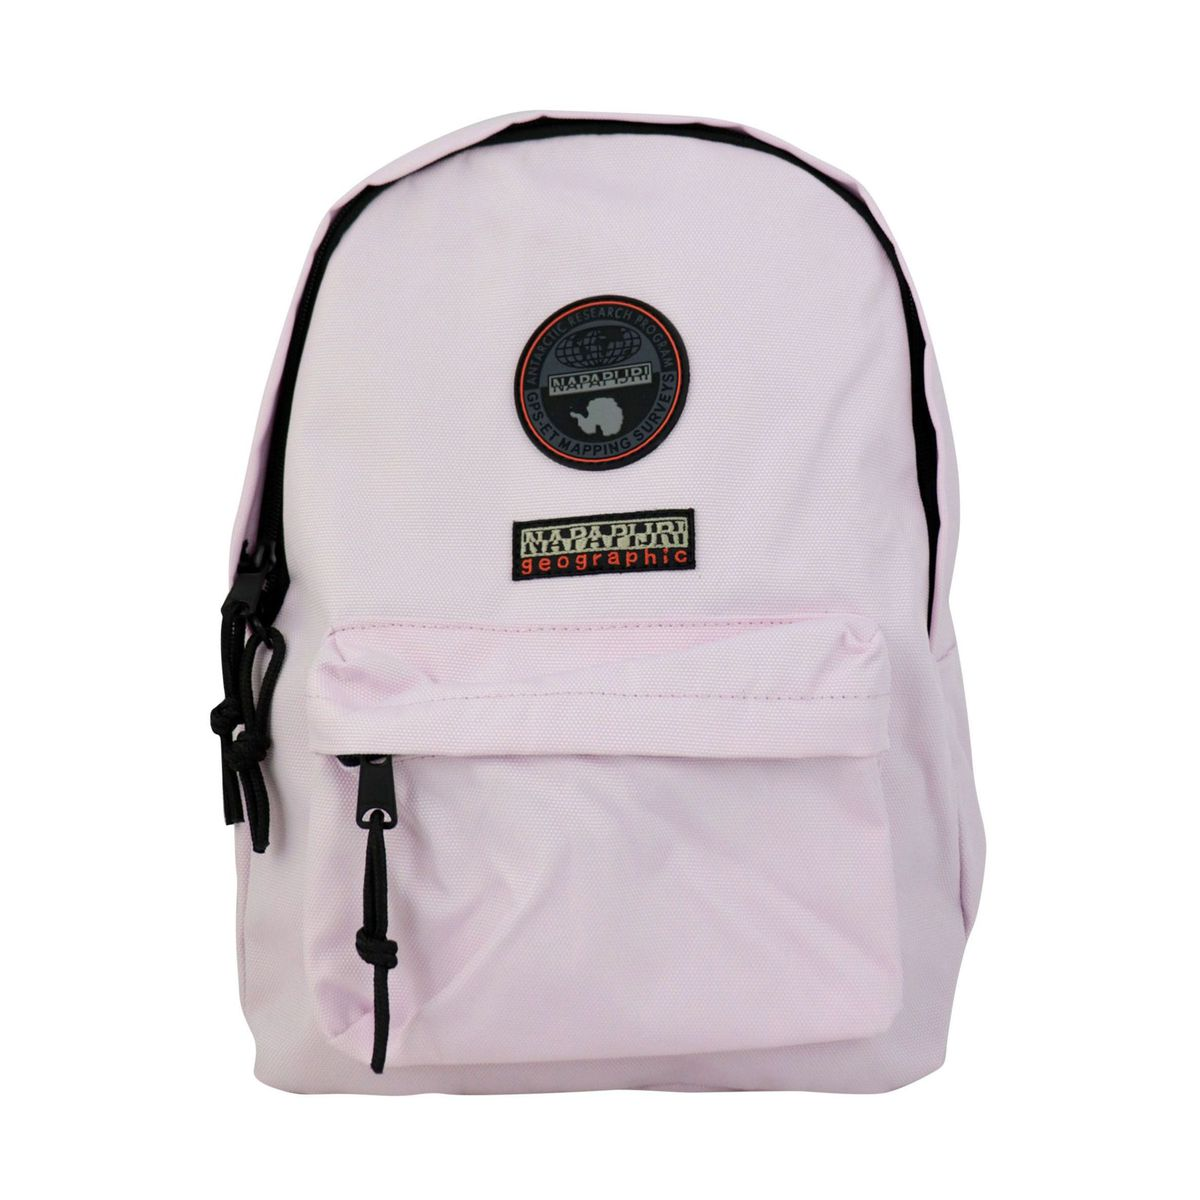 Voyage mini nylon backpack with logo Light pink NAPAPIJRI